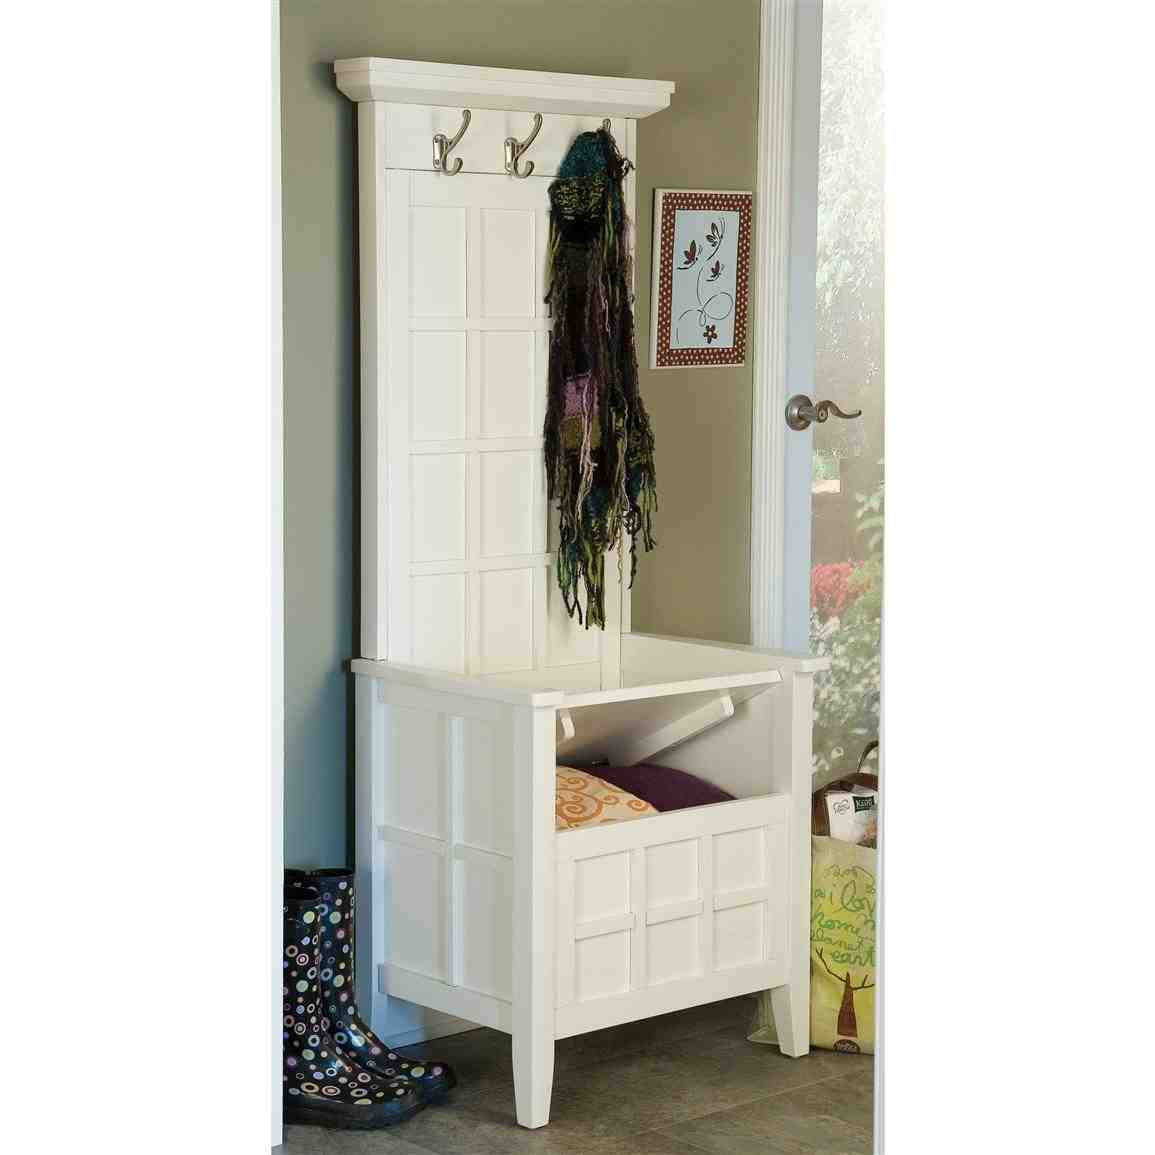 Shoe Rack Entryway Mini Hall Tree Storage Bench Home Furniture Design